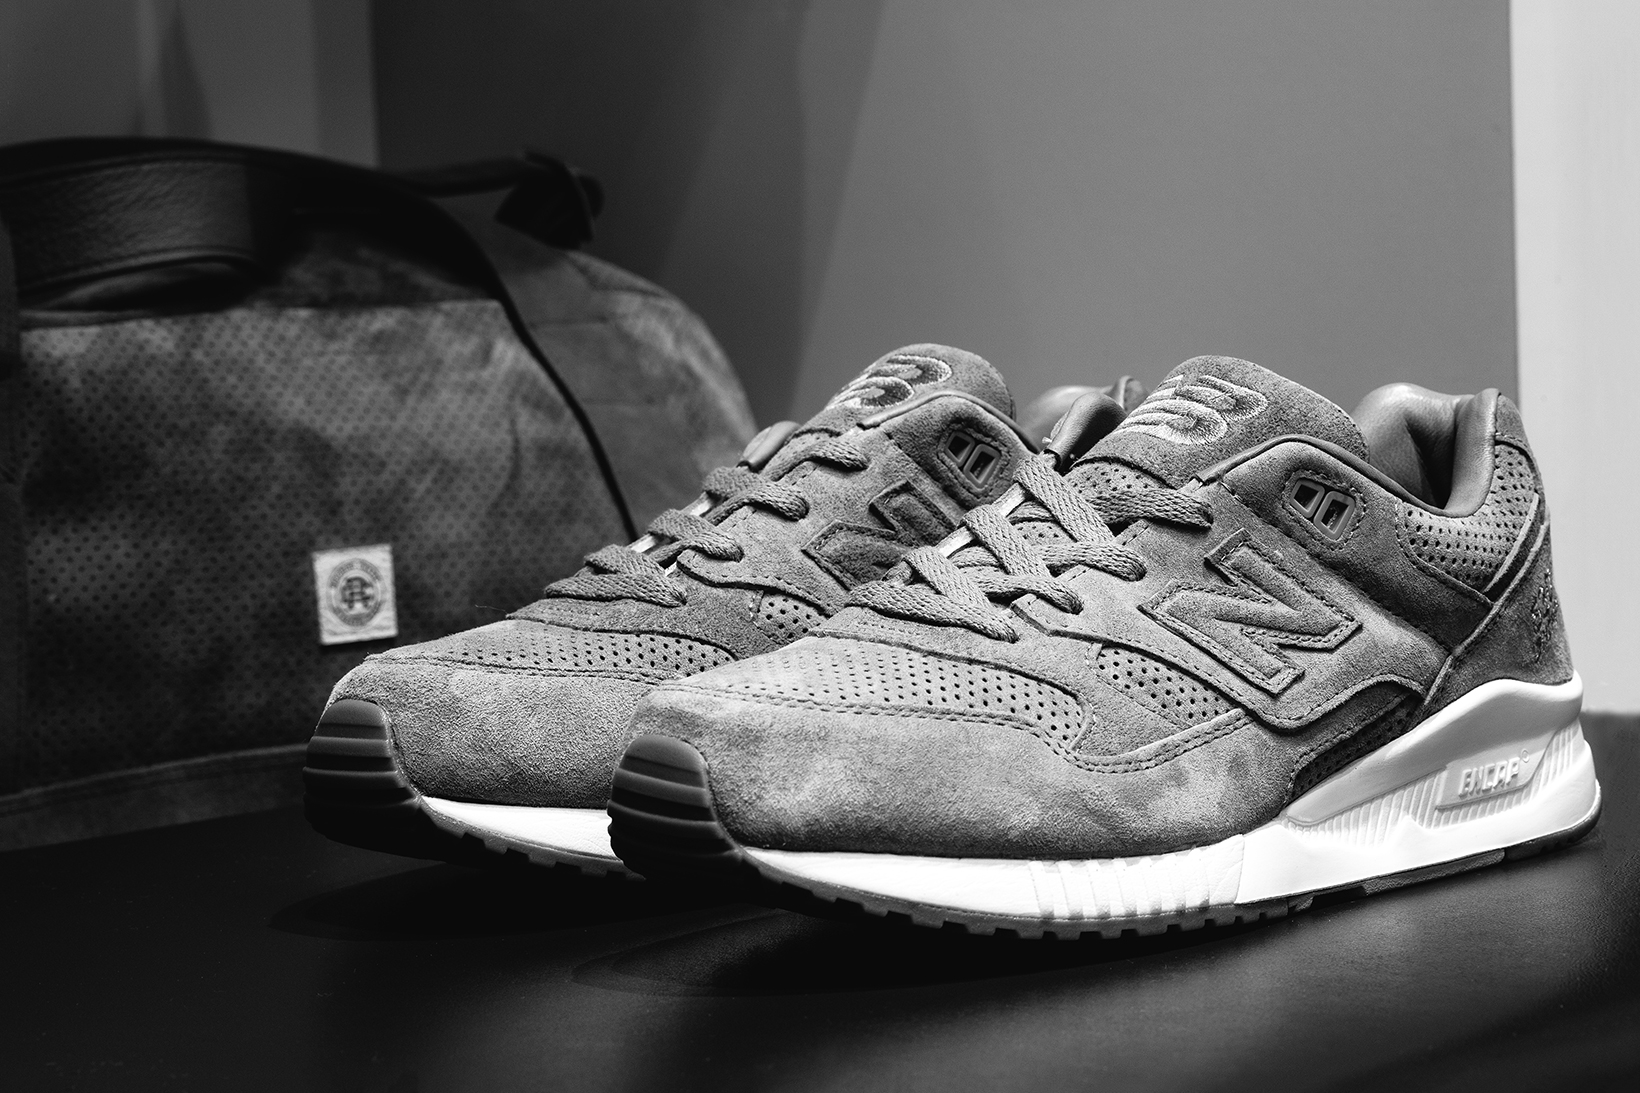 Reigning Champ Joins Forces With New Balance for the 530